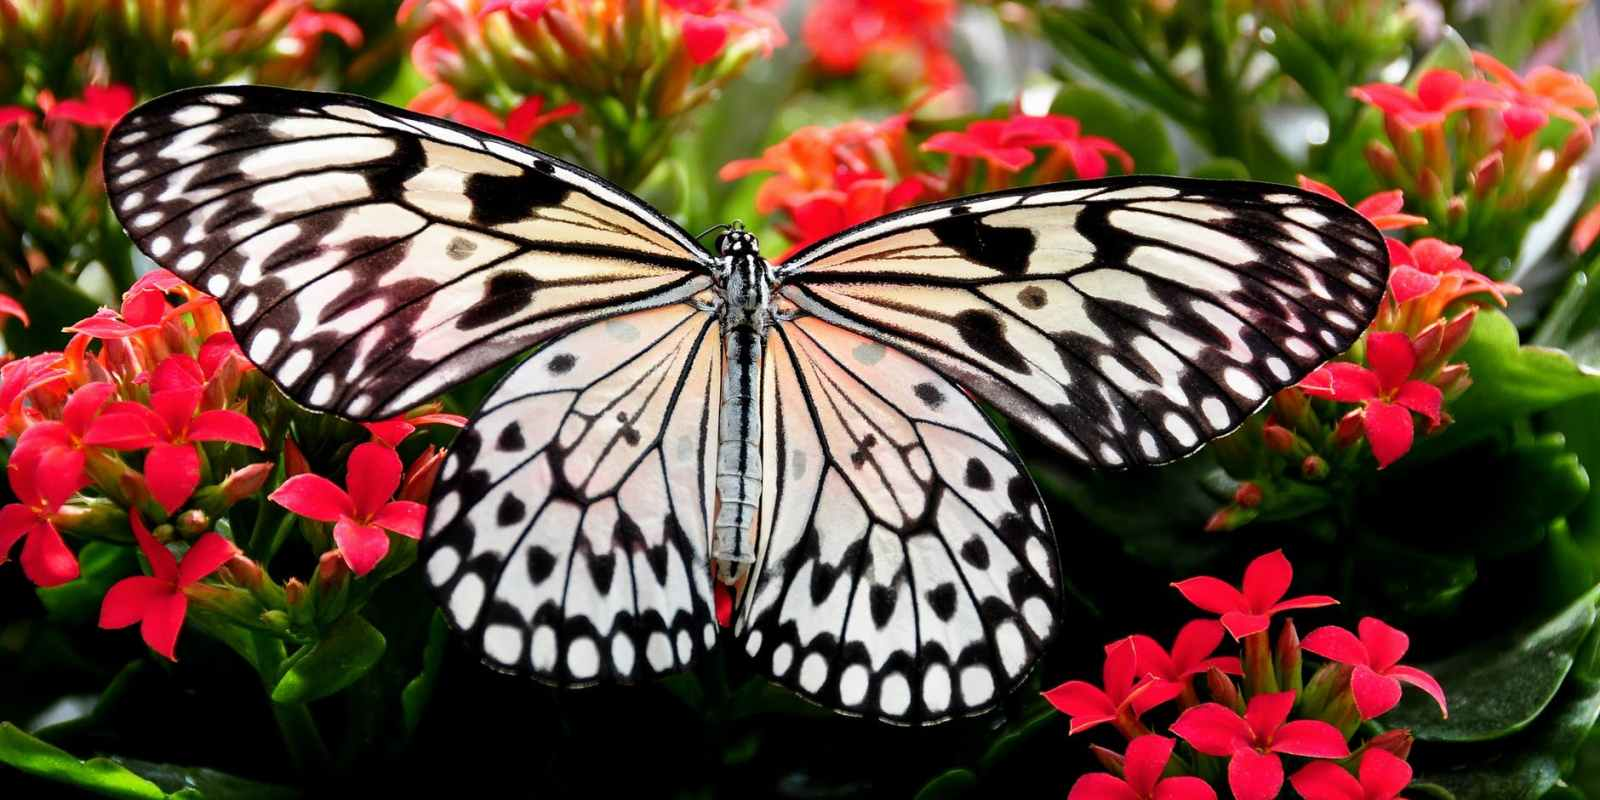 paper kite butterfly perching on red flower in close up photography